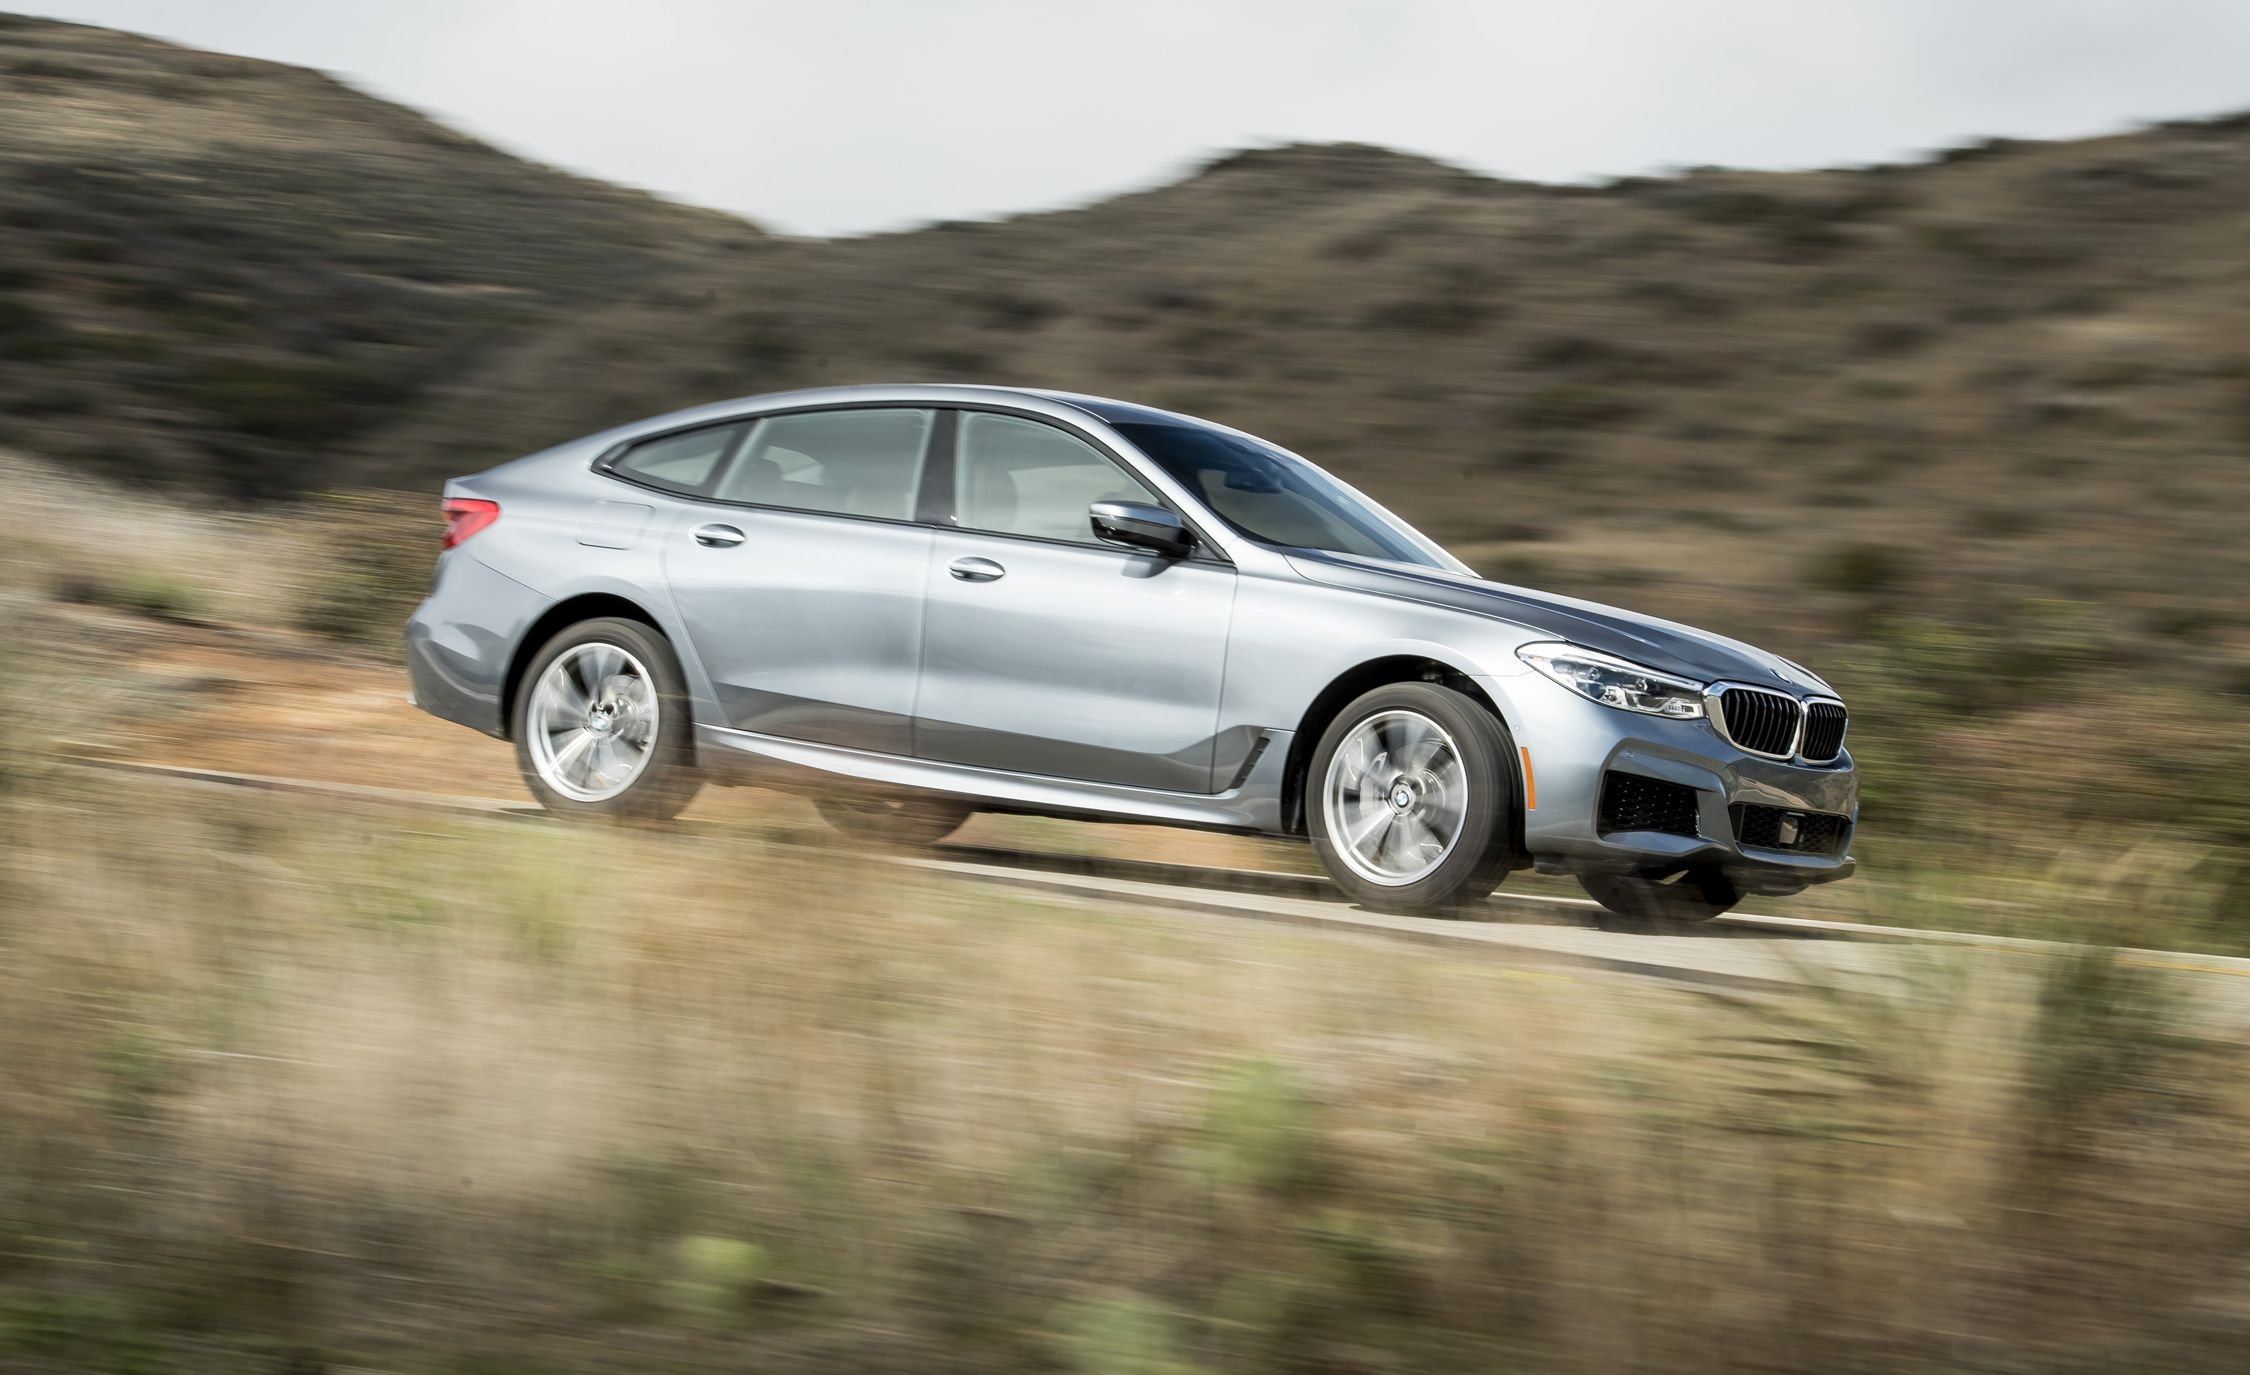 2018 Bmw 640i Xdrive Gran Turismo Tested Not Quite A Wagon Review